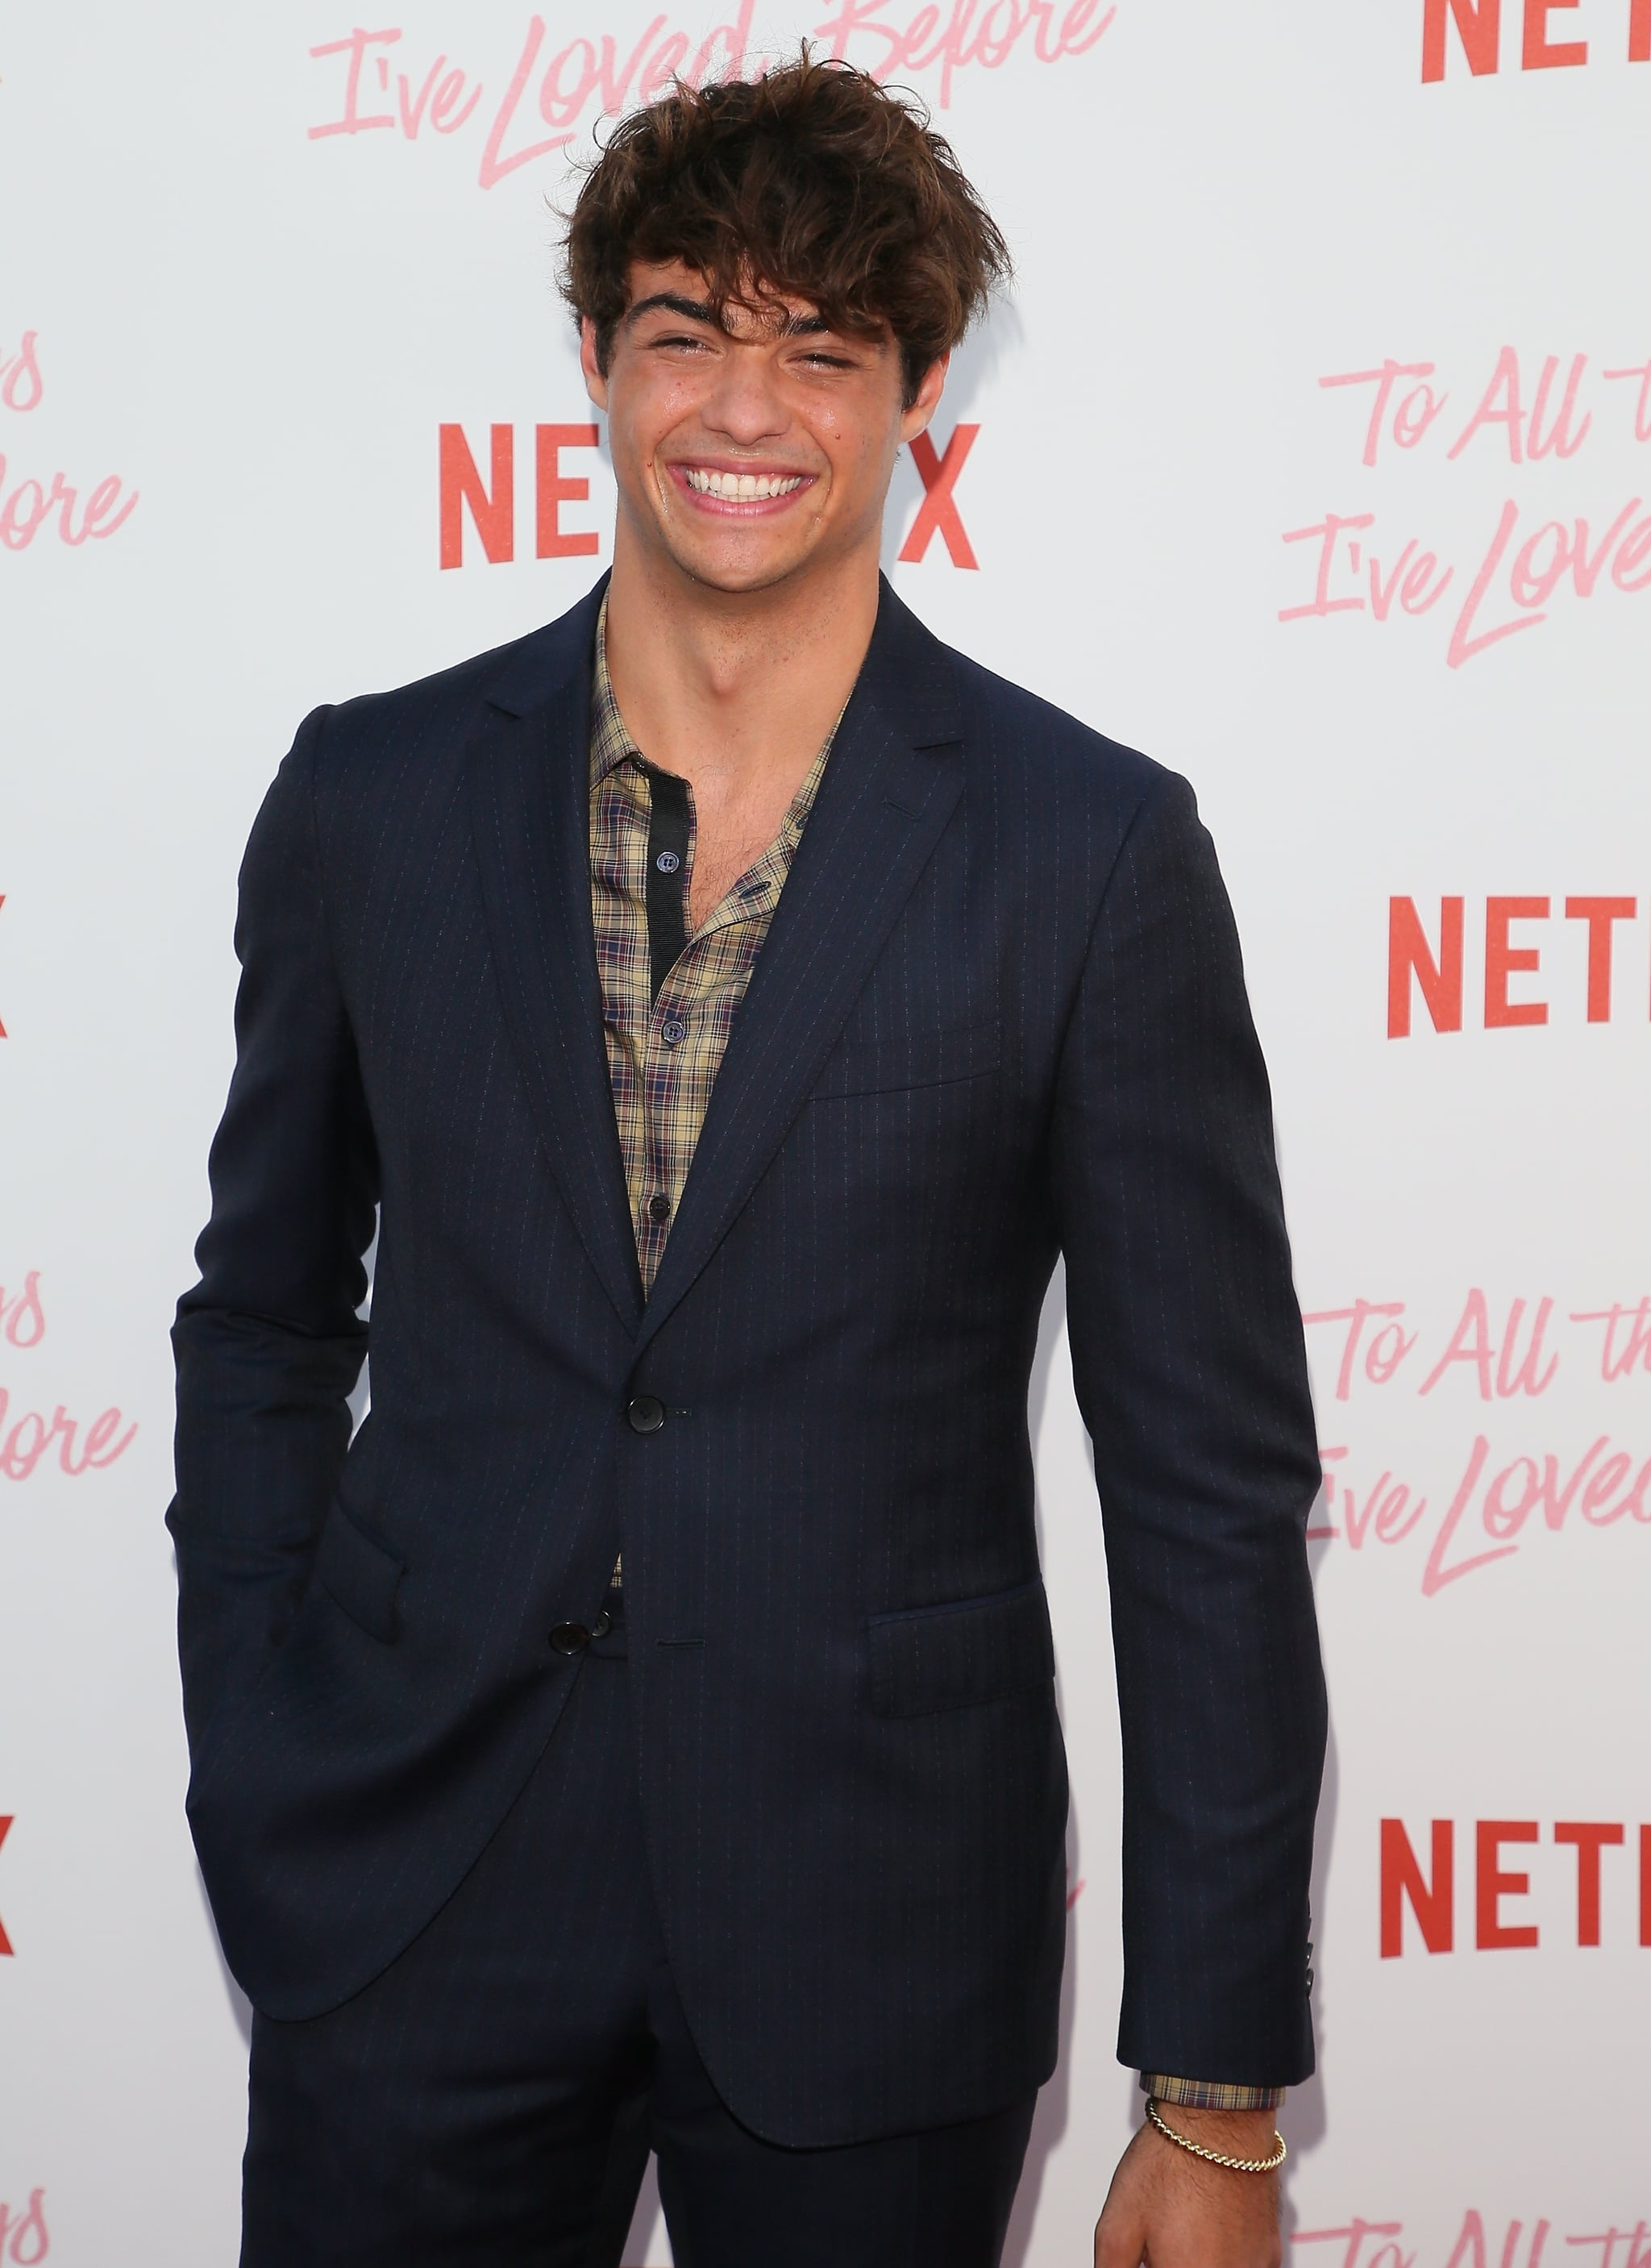 CULVER CITY, CA - AUGUST 16: Noah Centineo attends the Screening Of Netflix's 'To All The Boys I've Loved Before' - Arrivals at Arclight Cinemas Culver City on August 16, 2018 in Culver City, California. (Photo by JB Lacroix/WireImage)